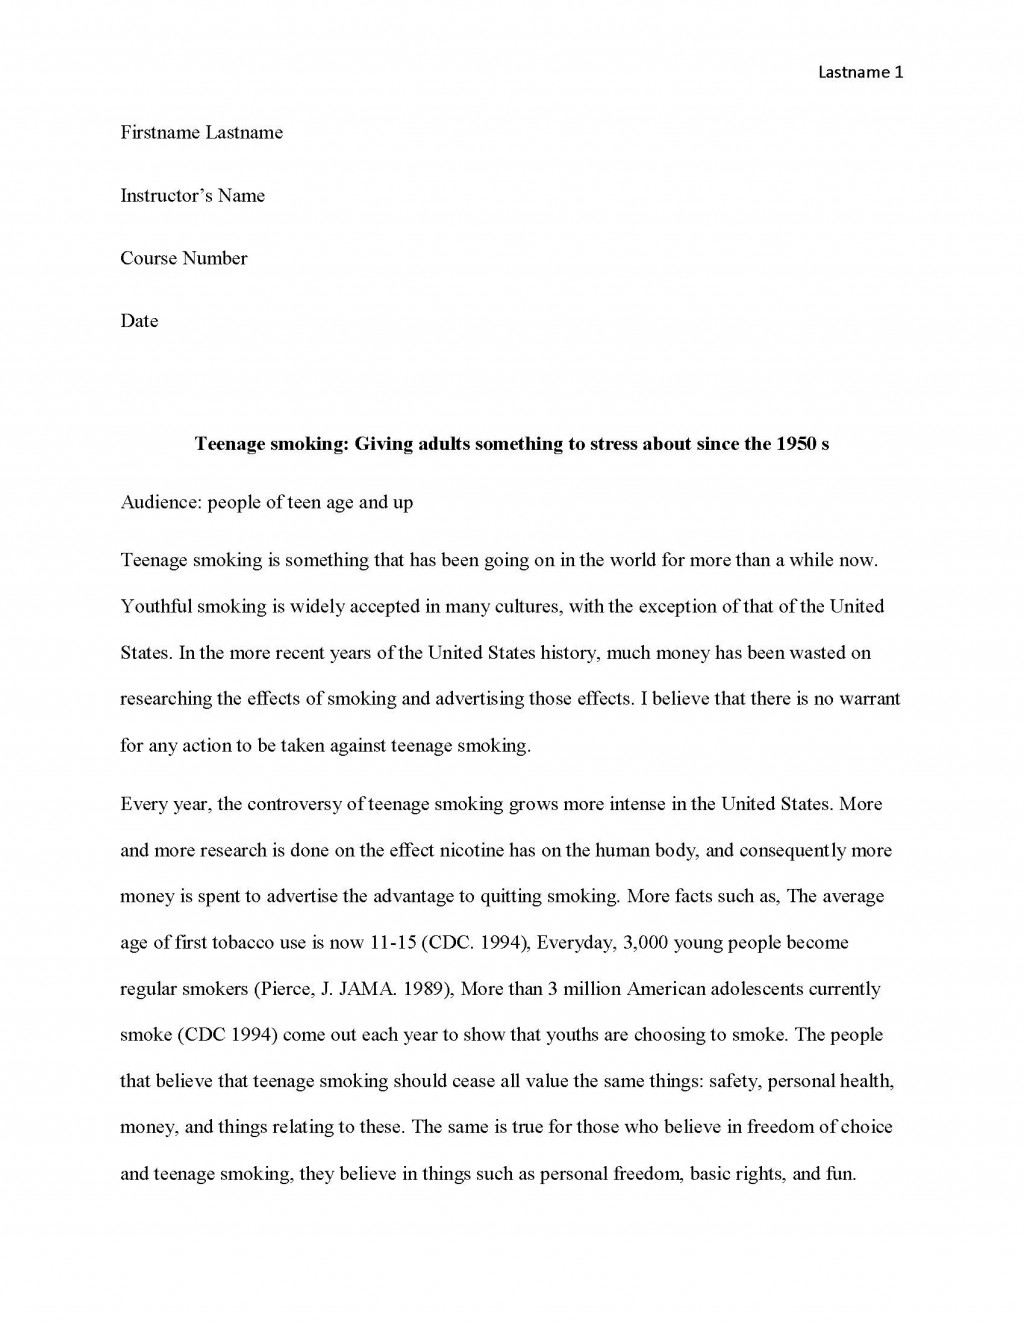 016 Teen Smoking Free Sample Page 1 Narrative Interview Essay Impressive Example Examples Large